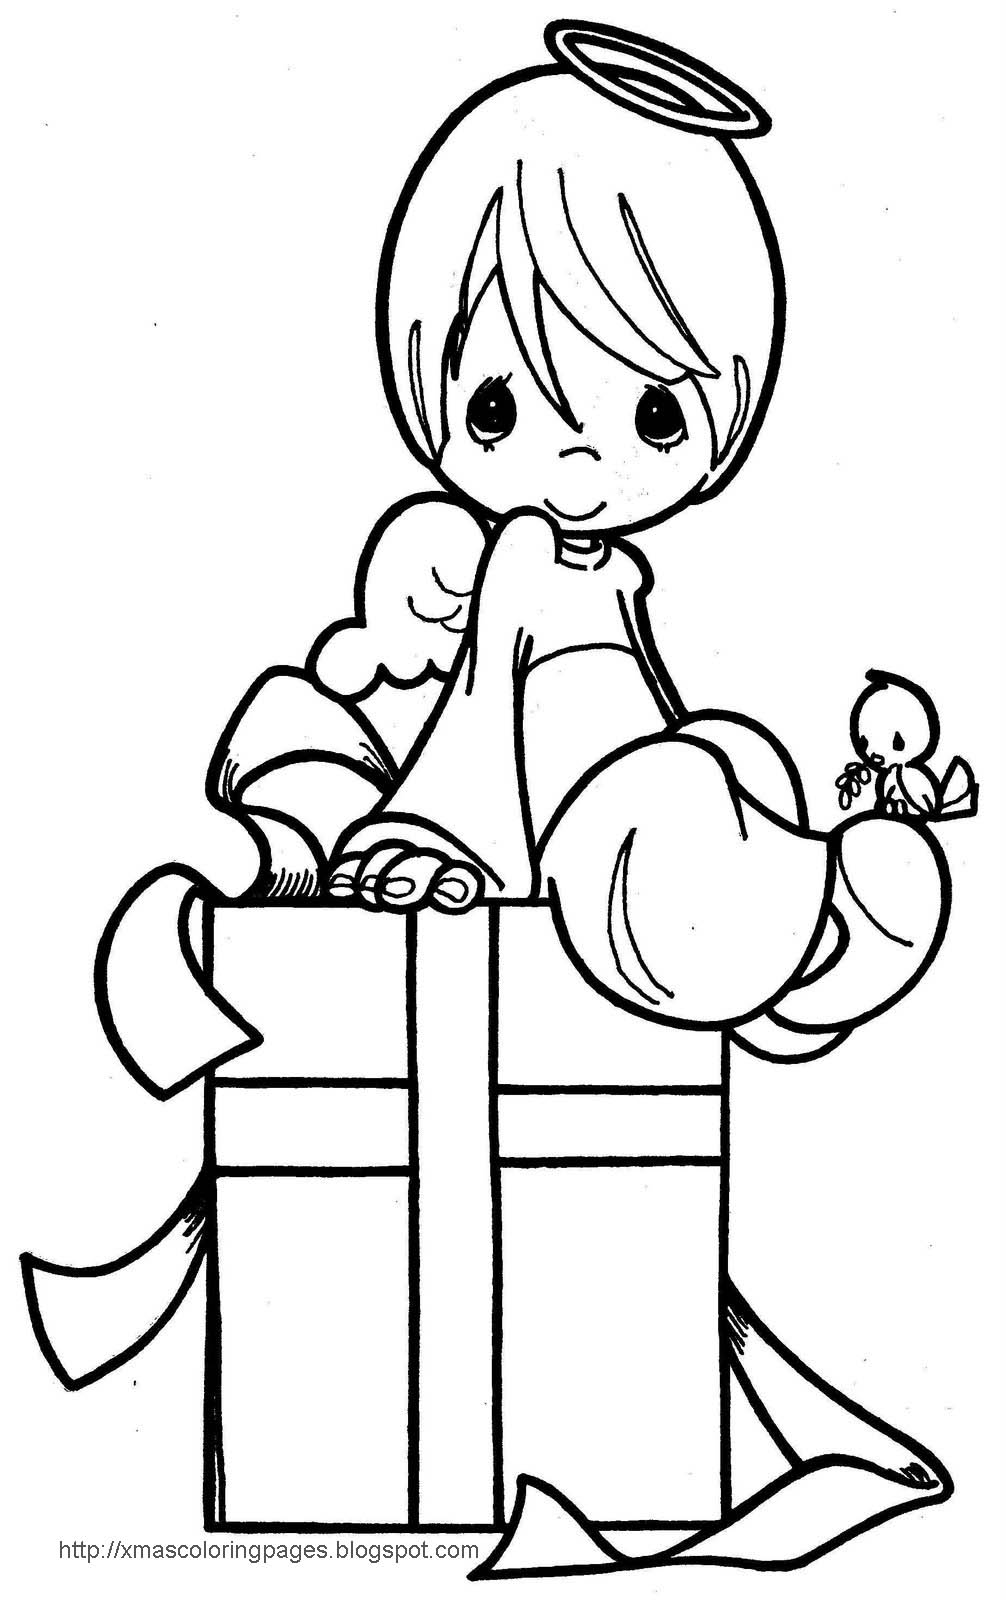 printable angel coloring pages - photo#12